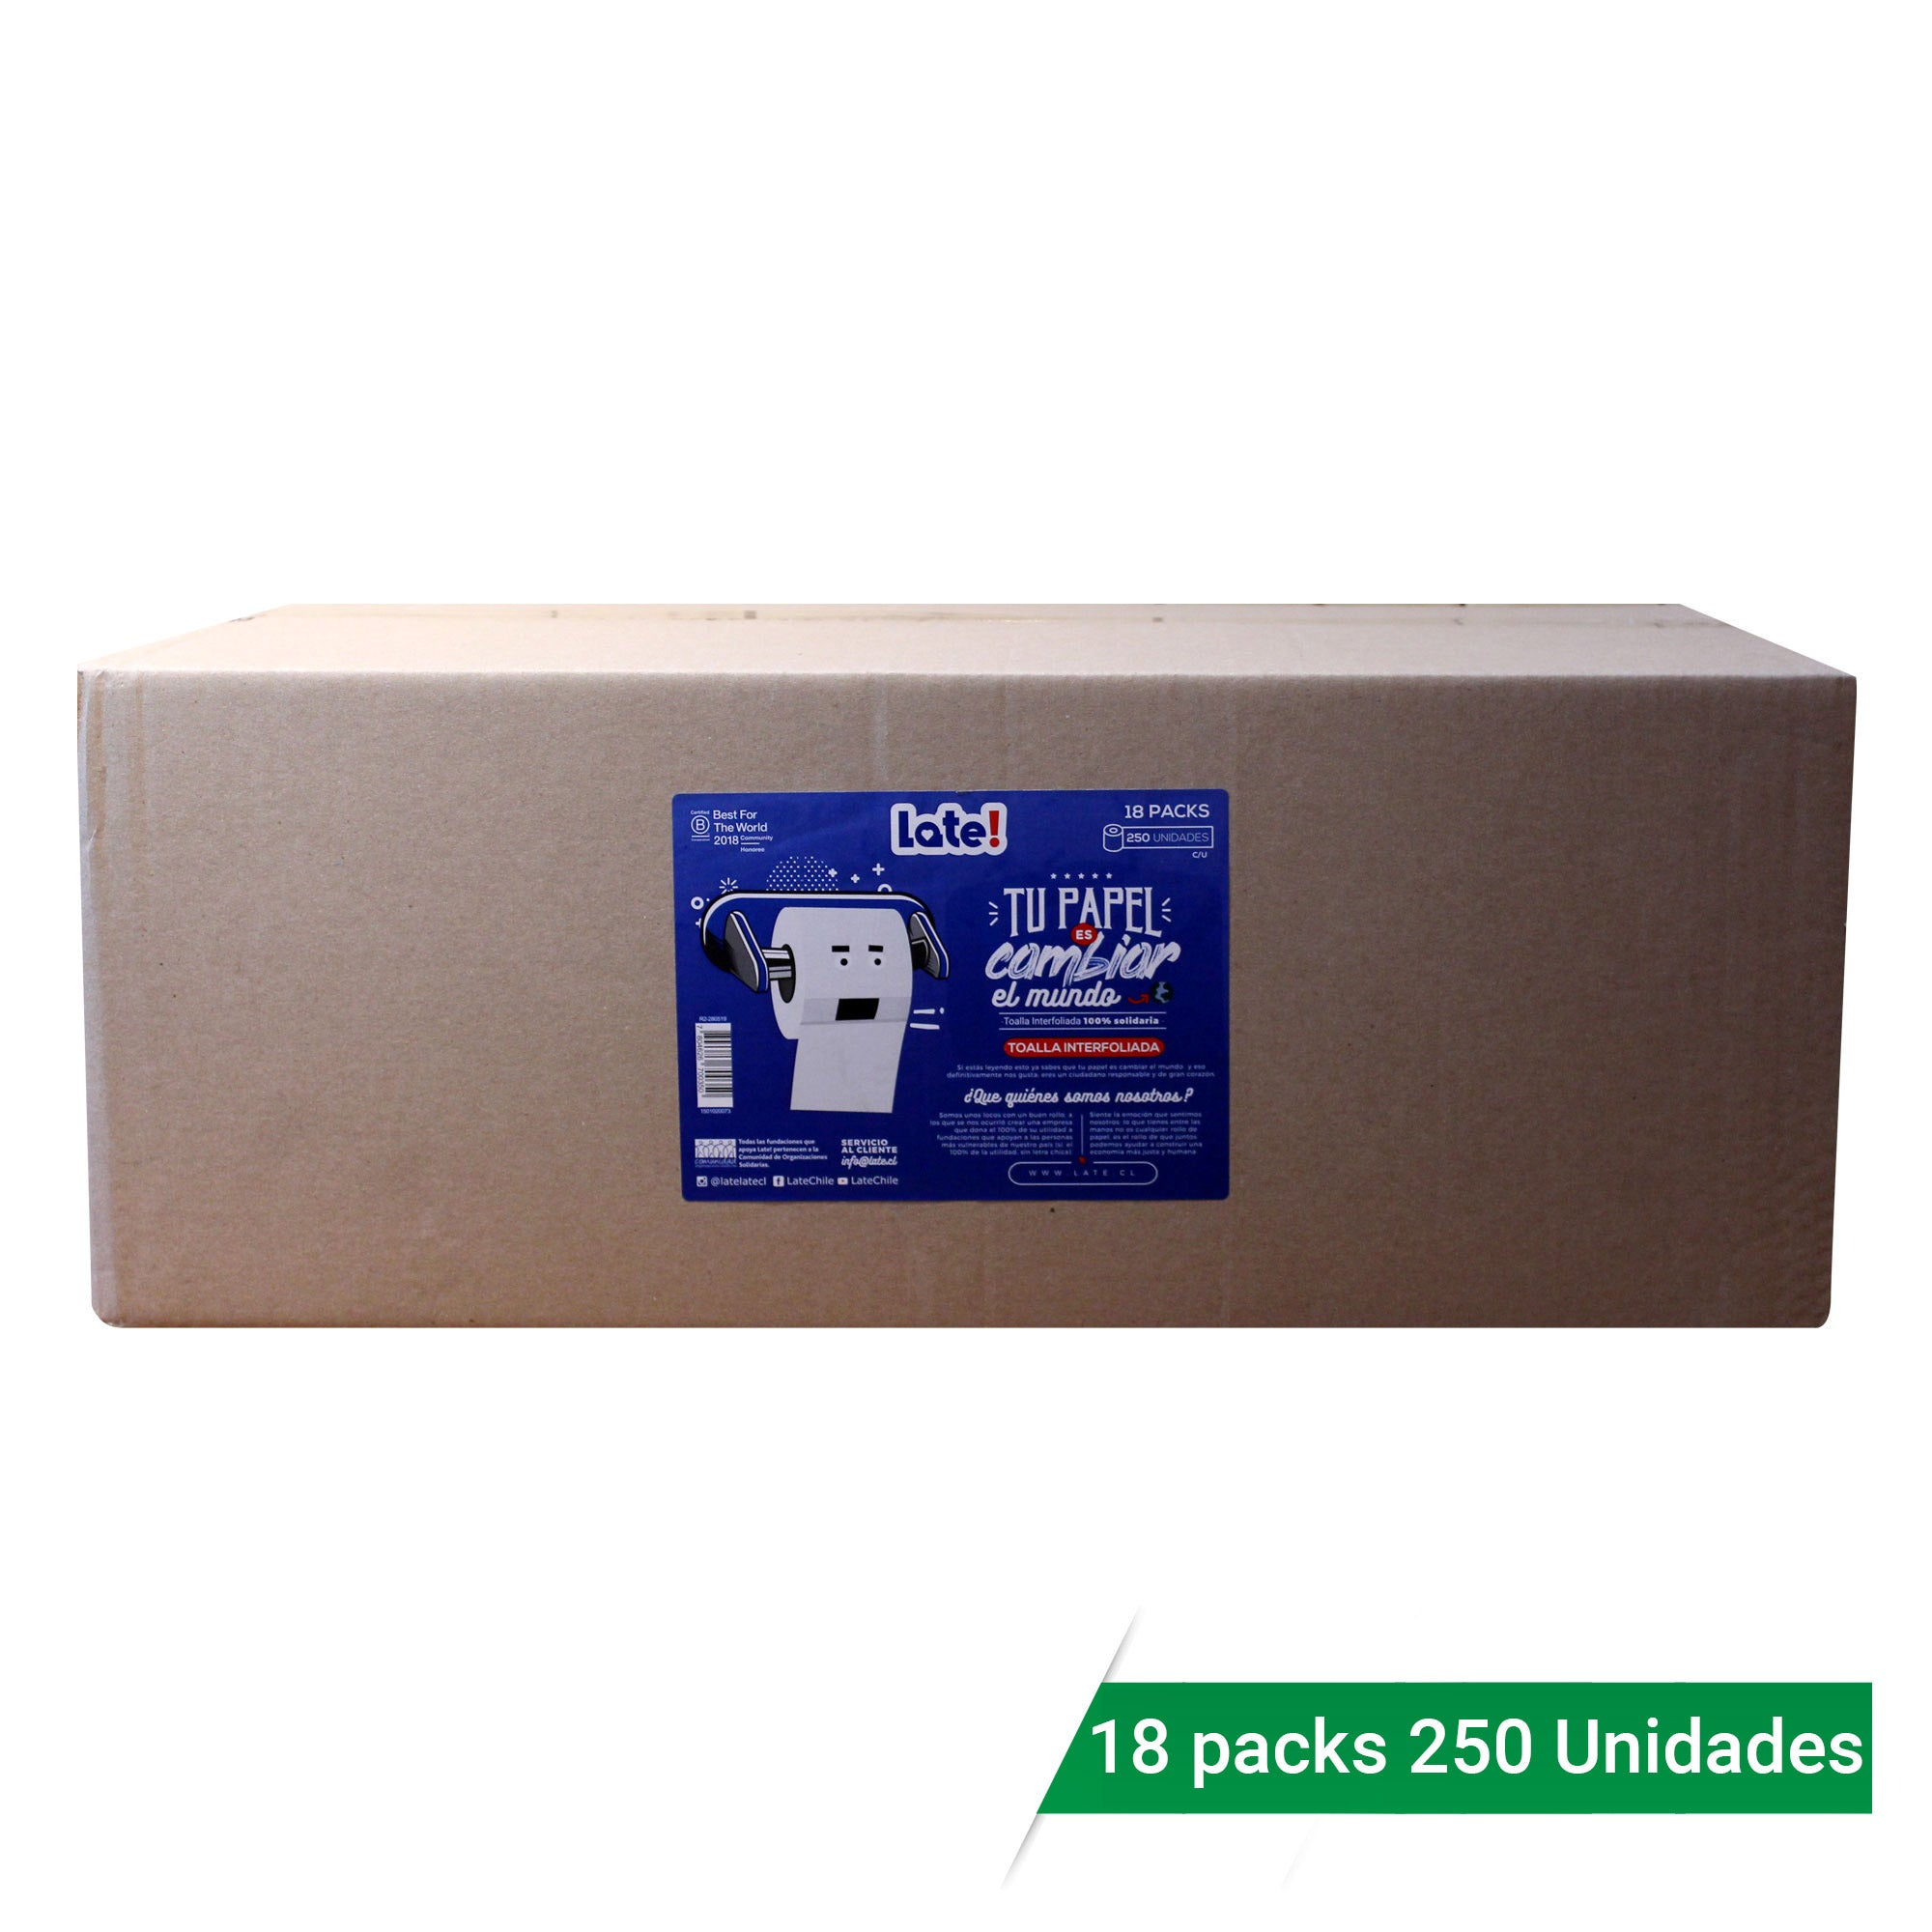 Toalla Interfoliada para uso Industrial, 18 packs de 250 unidades